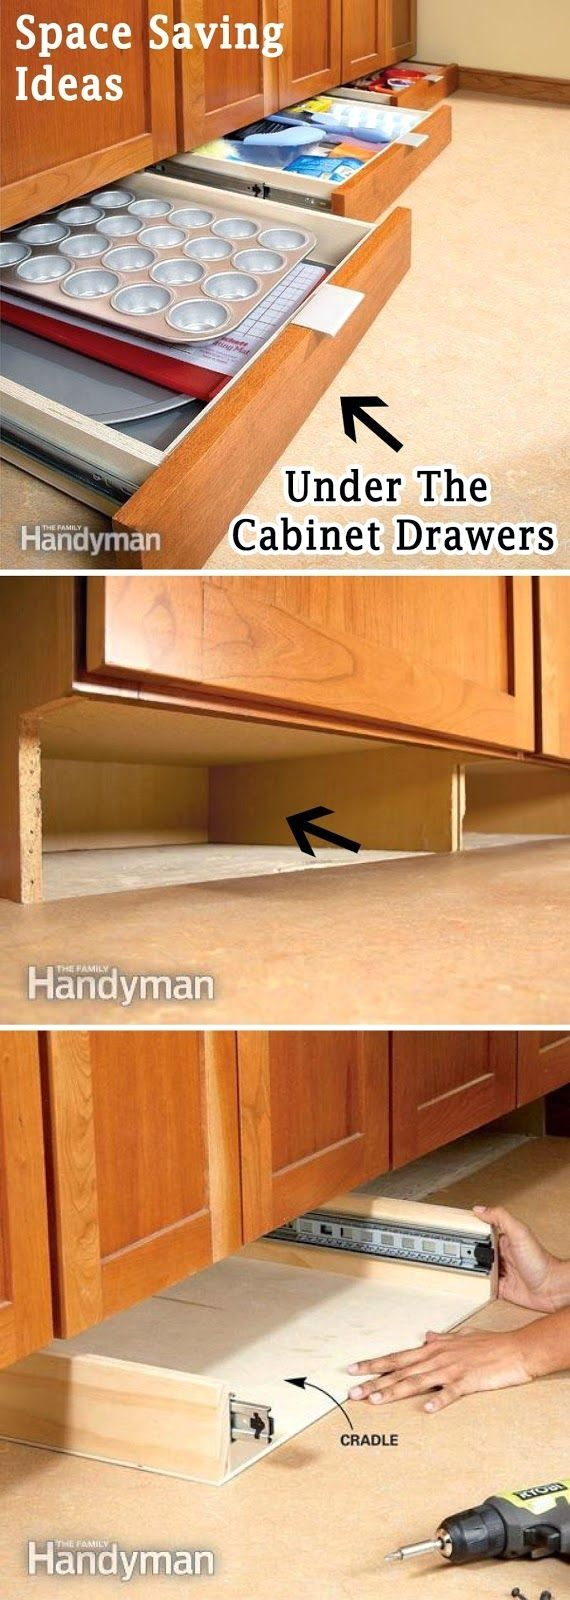 Kitchen Cabinet Craft Ideas And Pics Of Craigslist Michigan Kitchen Cabinets Kitchencabinets Kitchenorganization Home Projects Home Remodeling Home Diy